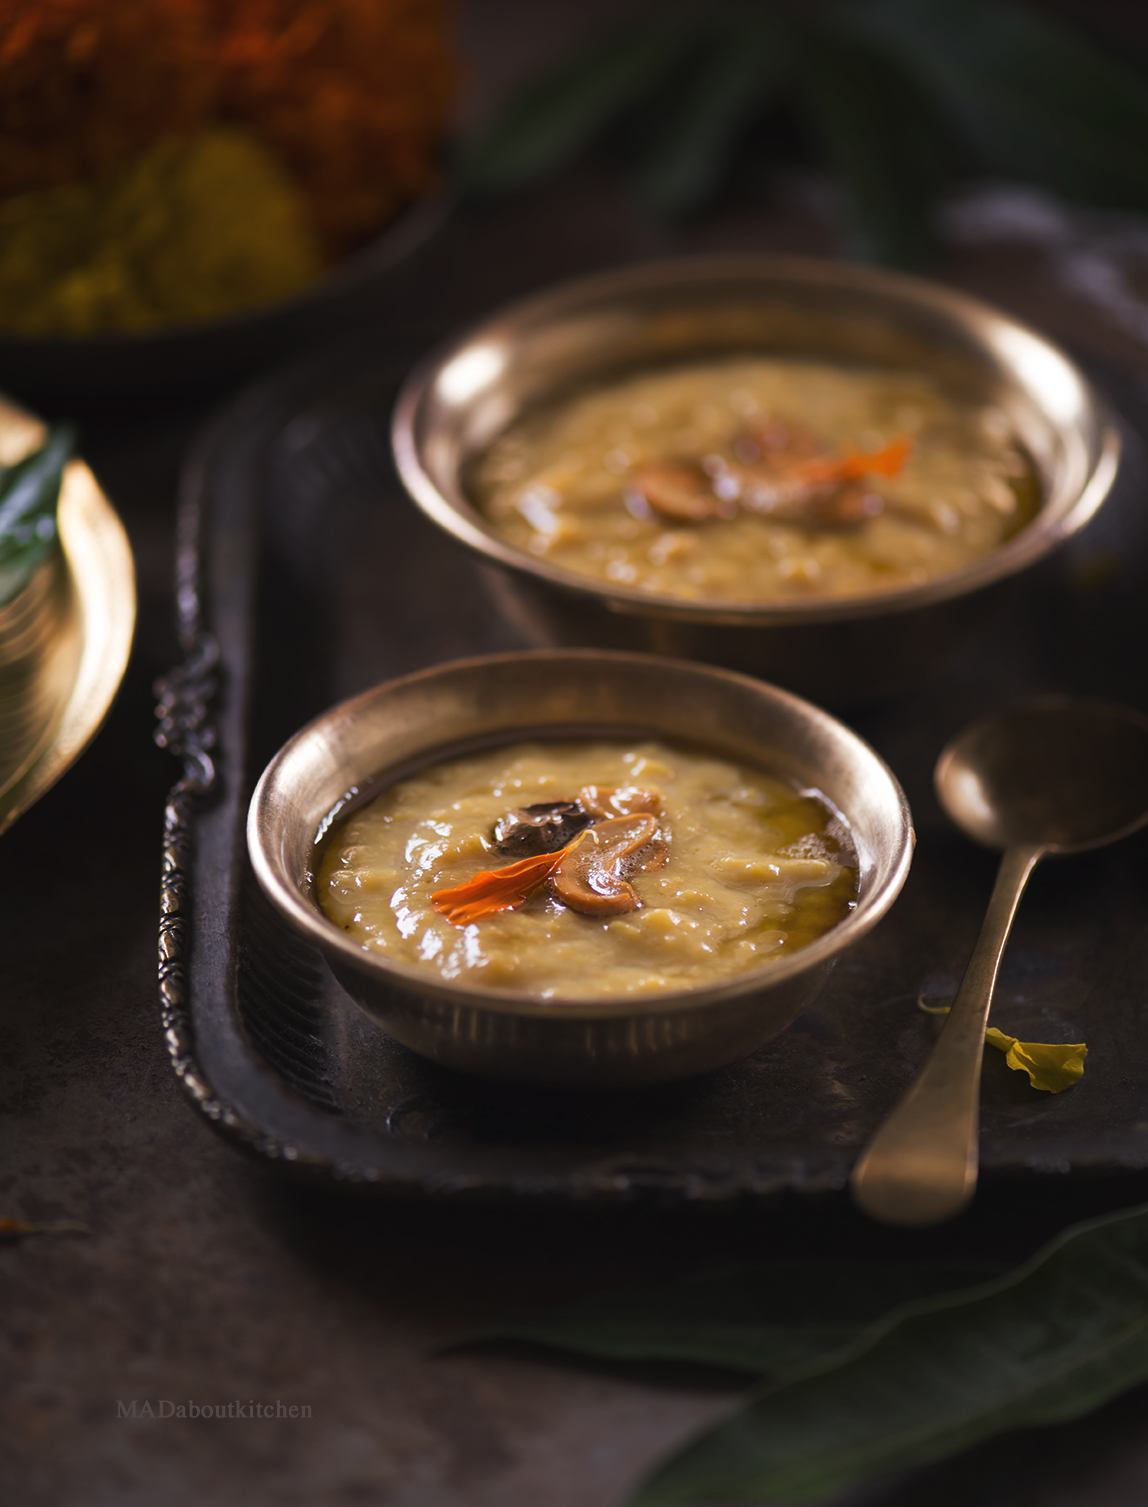 Hesaru Bele Paayasa made using Moong dal ( Green gram), is a quick, simple and yummy kheer that is very often made during festivals.